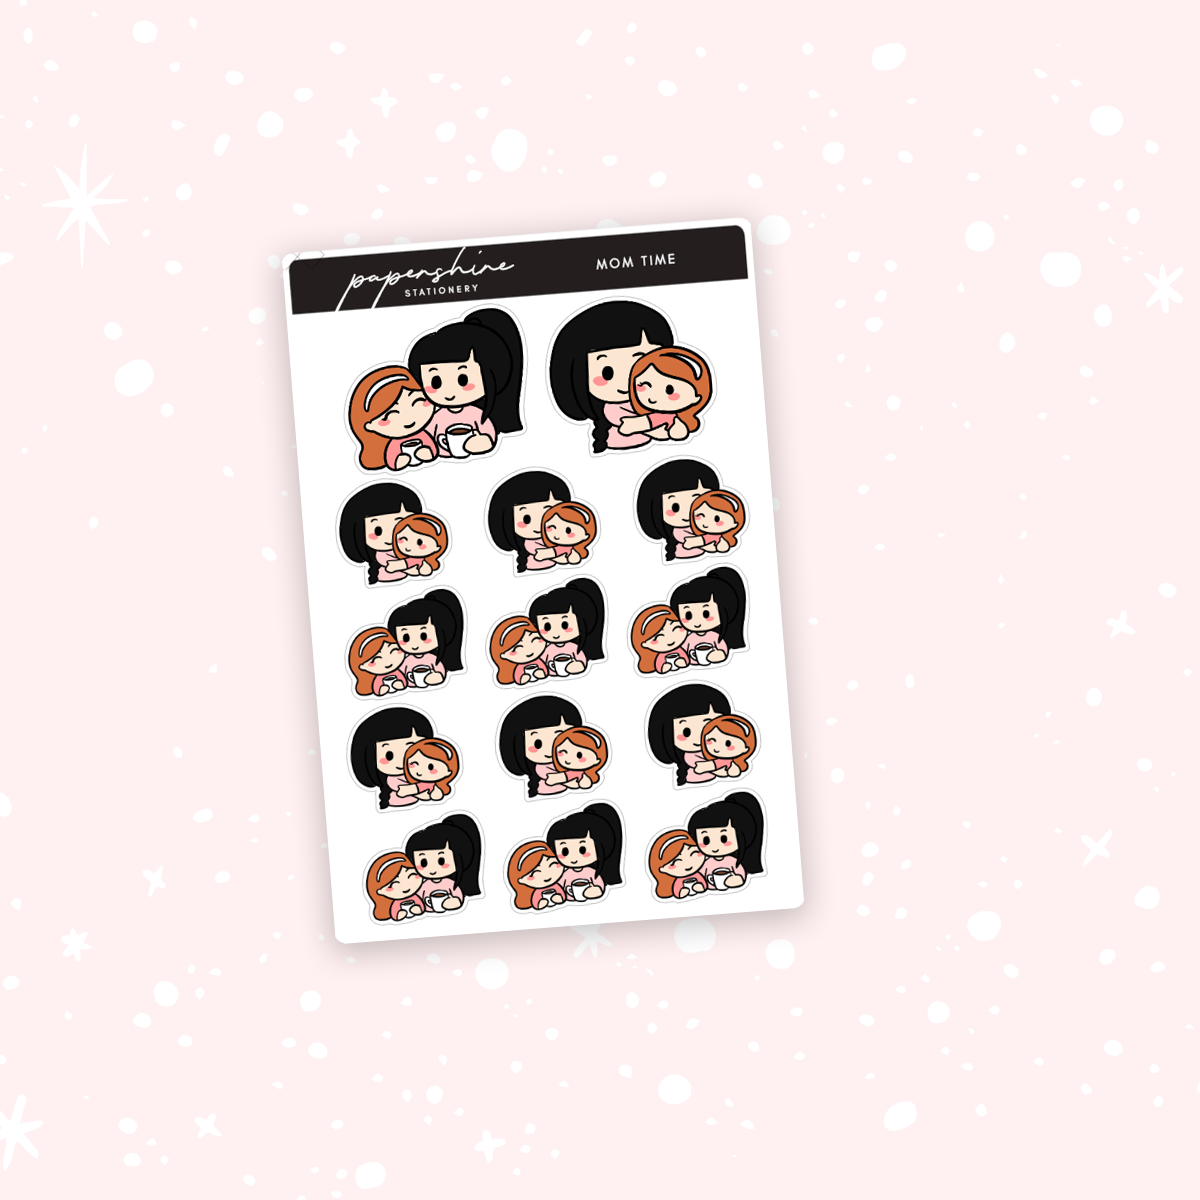 Mom Time Nana Stickers